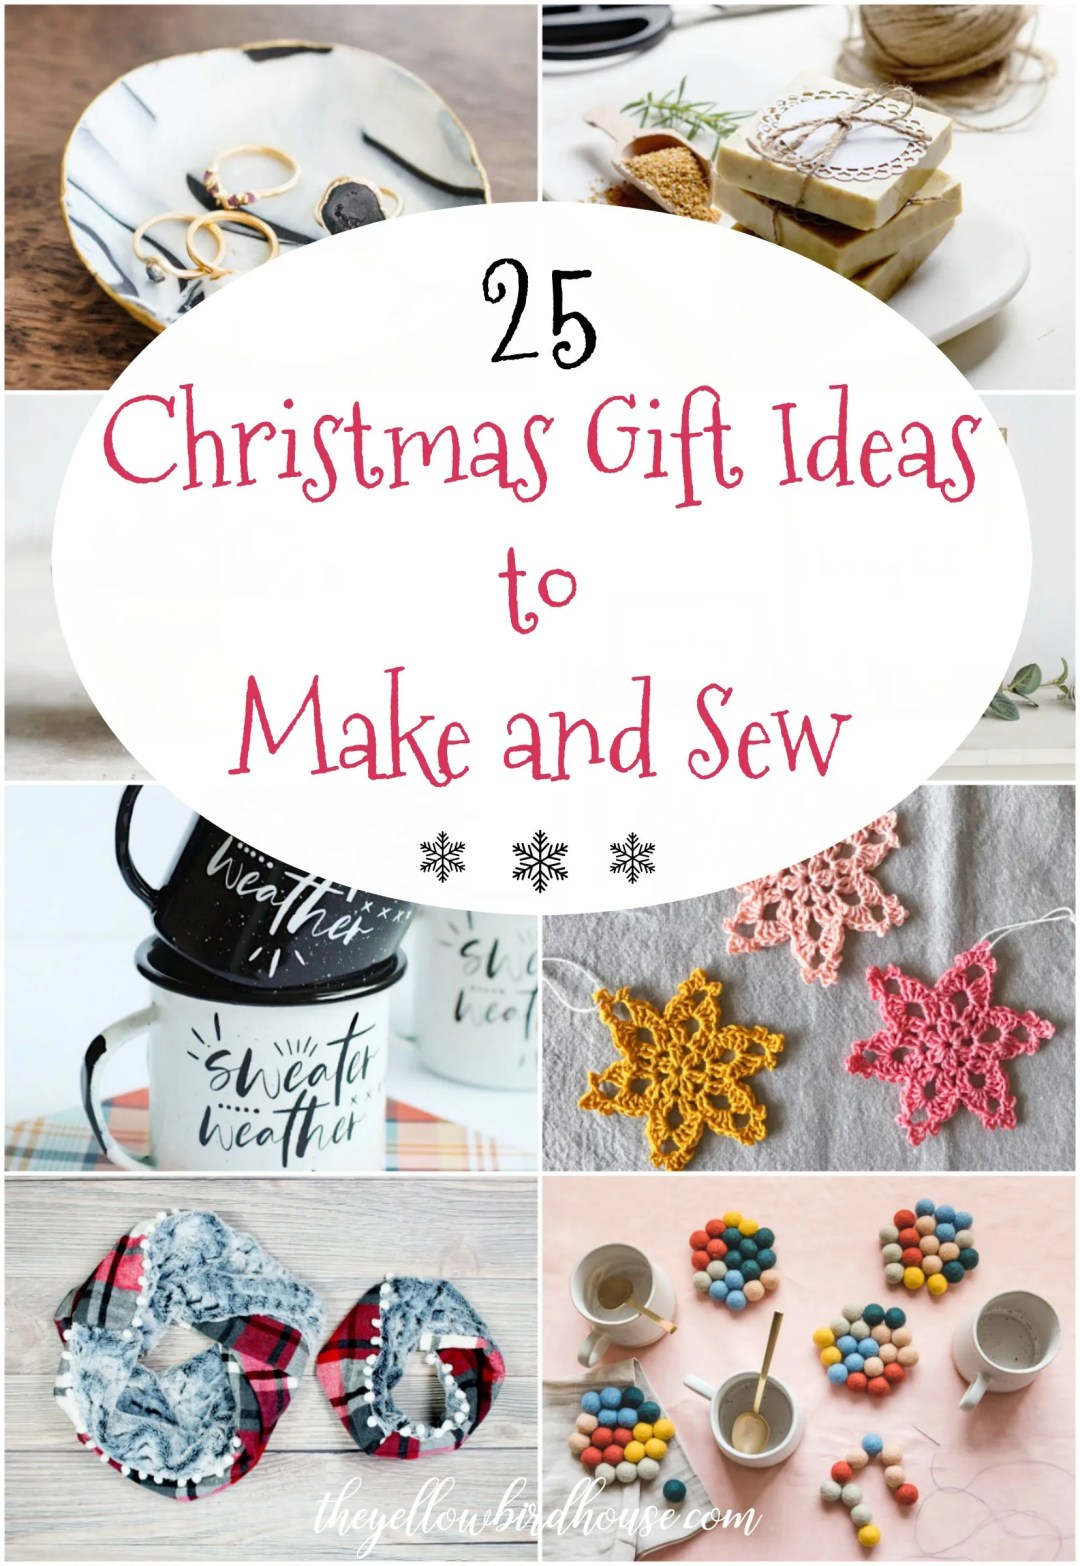 25 Christmas Gift Ideas to Make and Sew | The Yellow Birdhouse